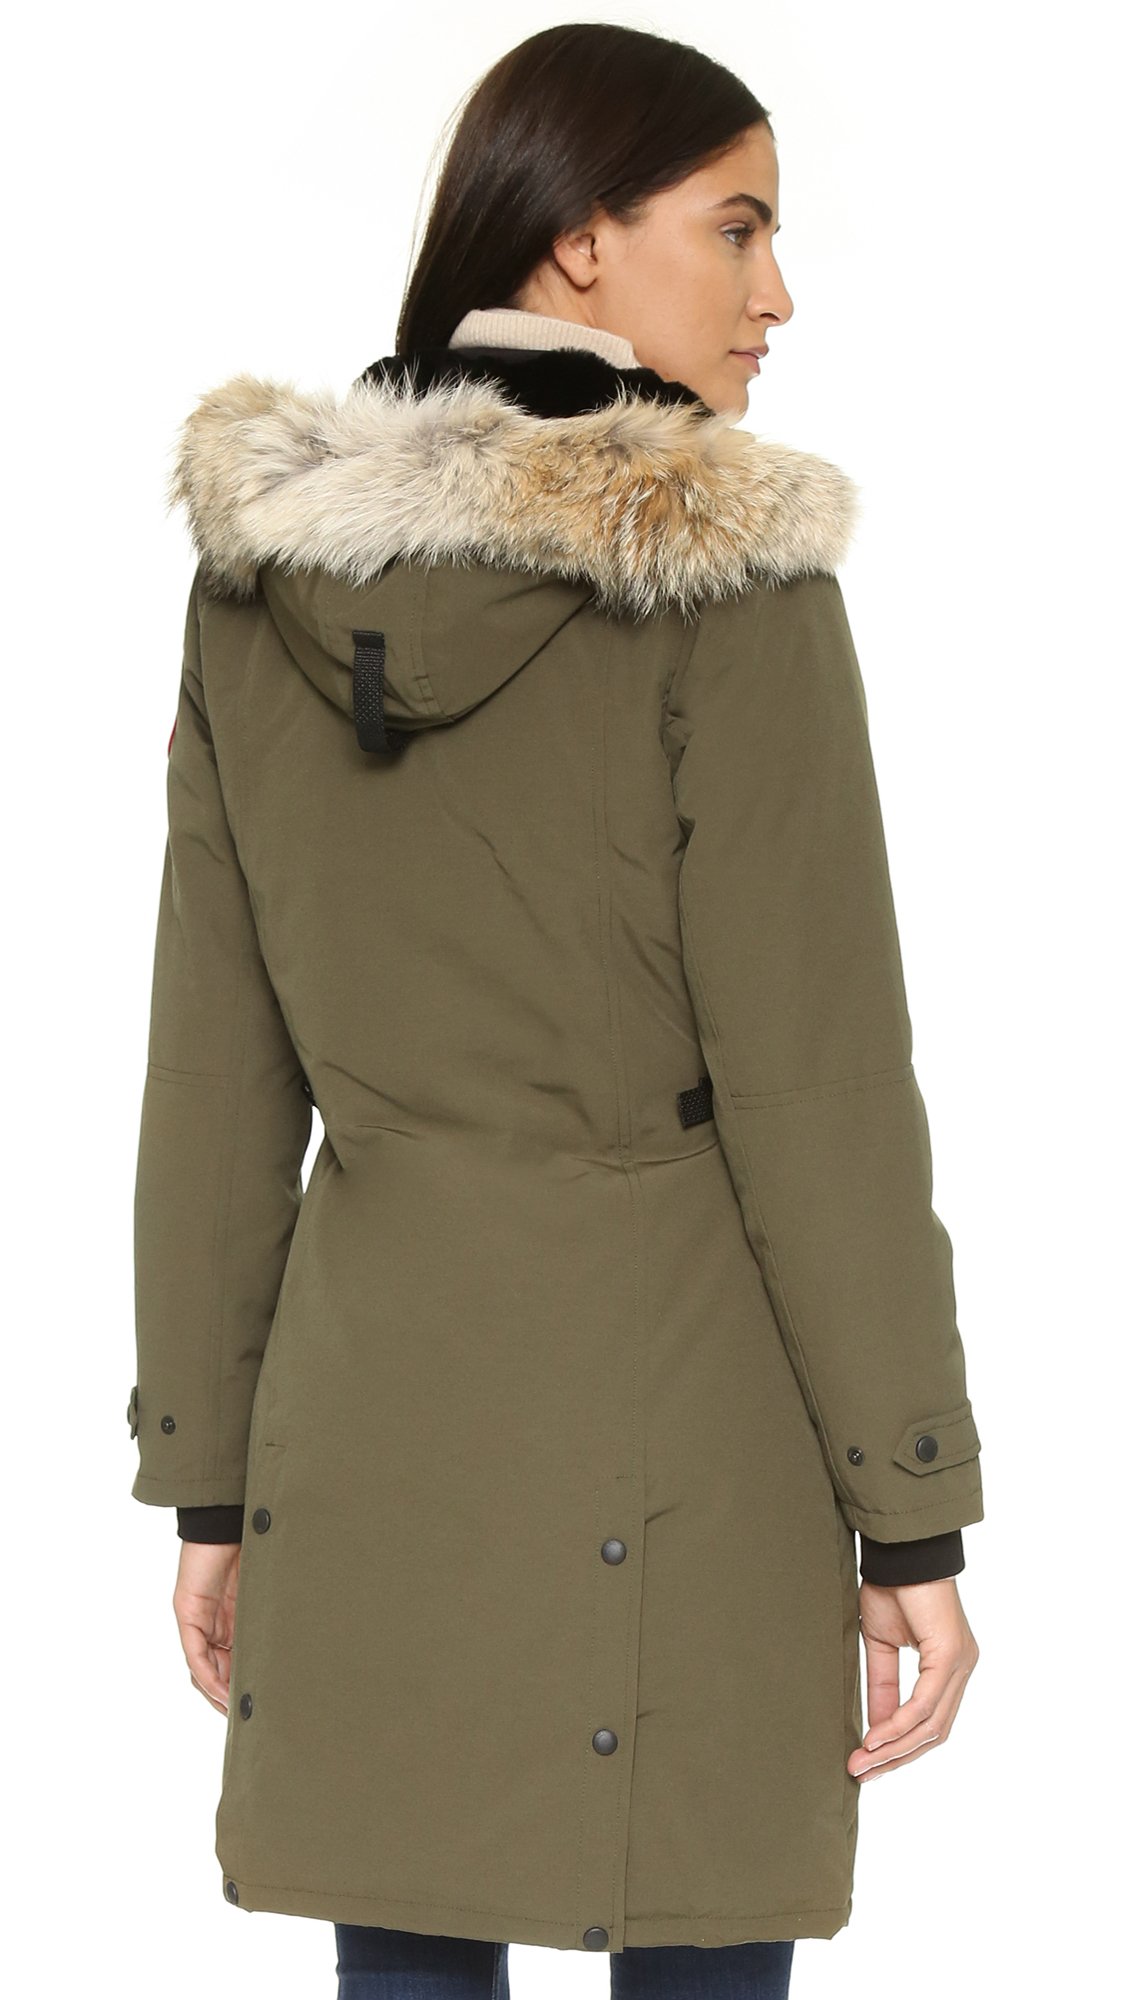 Canada Goose Women's Kensington Parka Coat - amazon.com